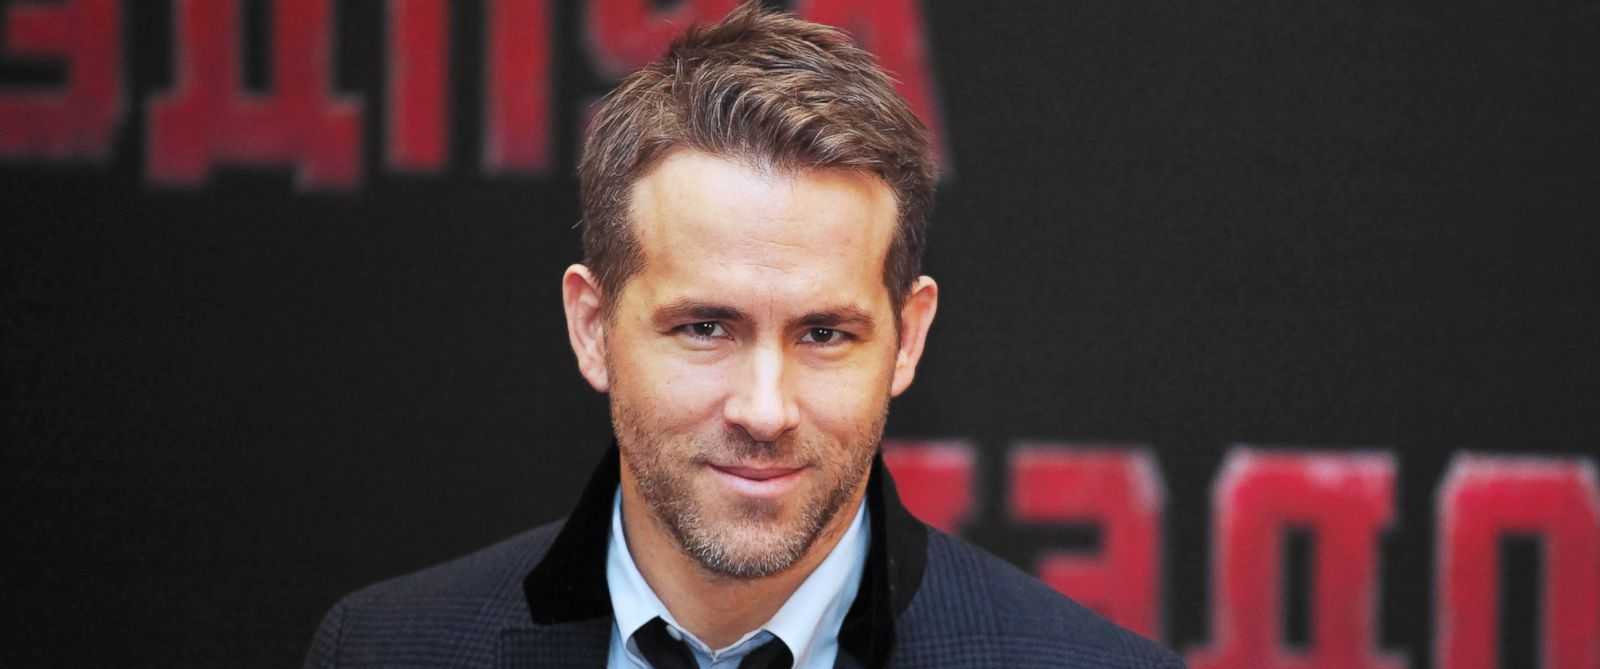 Ryan Reynolds Defends His Daughter's Name: 'I Didn't Call ... Blake Lively Daughter